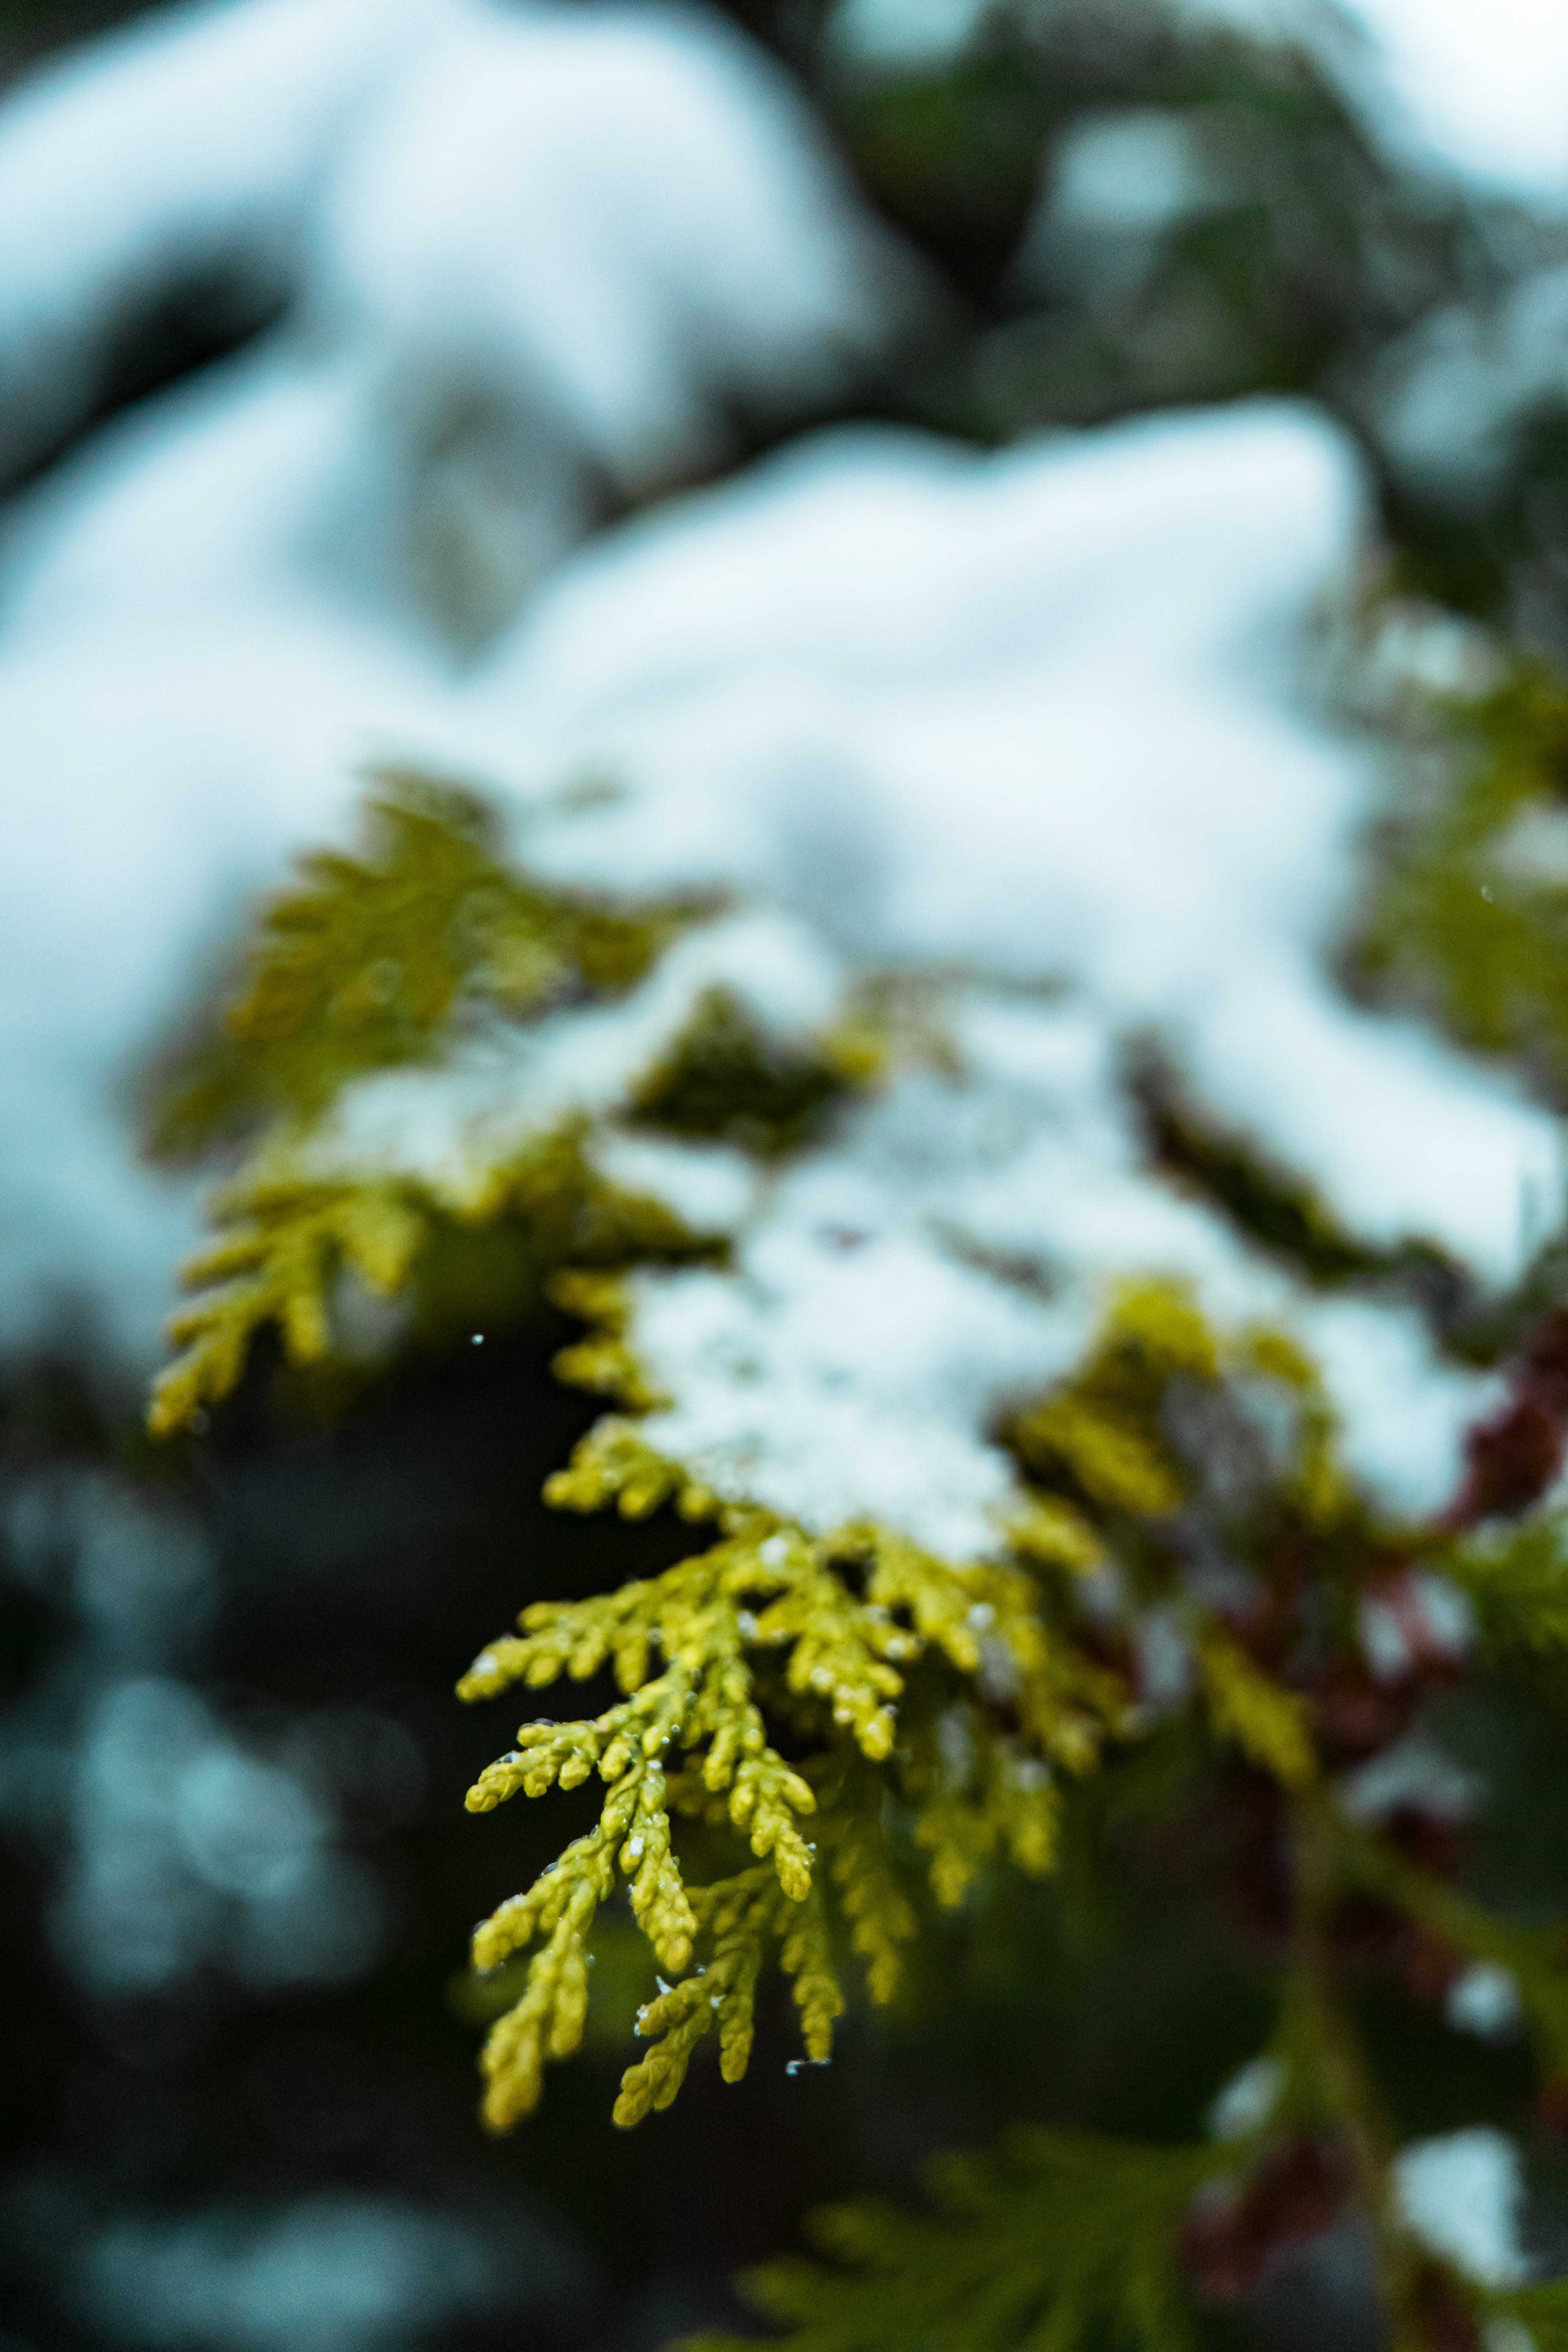 Selective Focus Photography of Snow